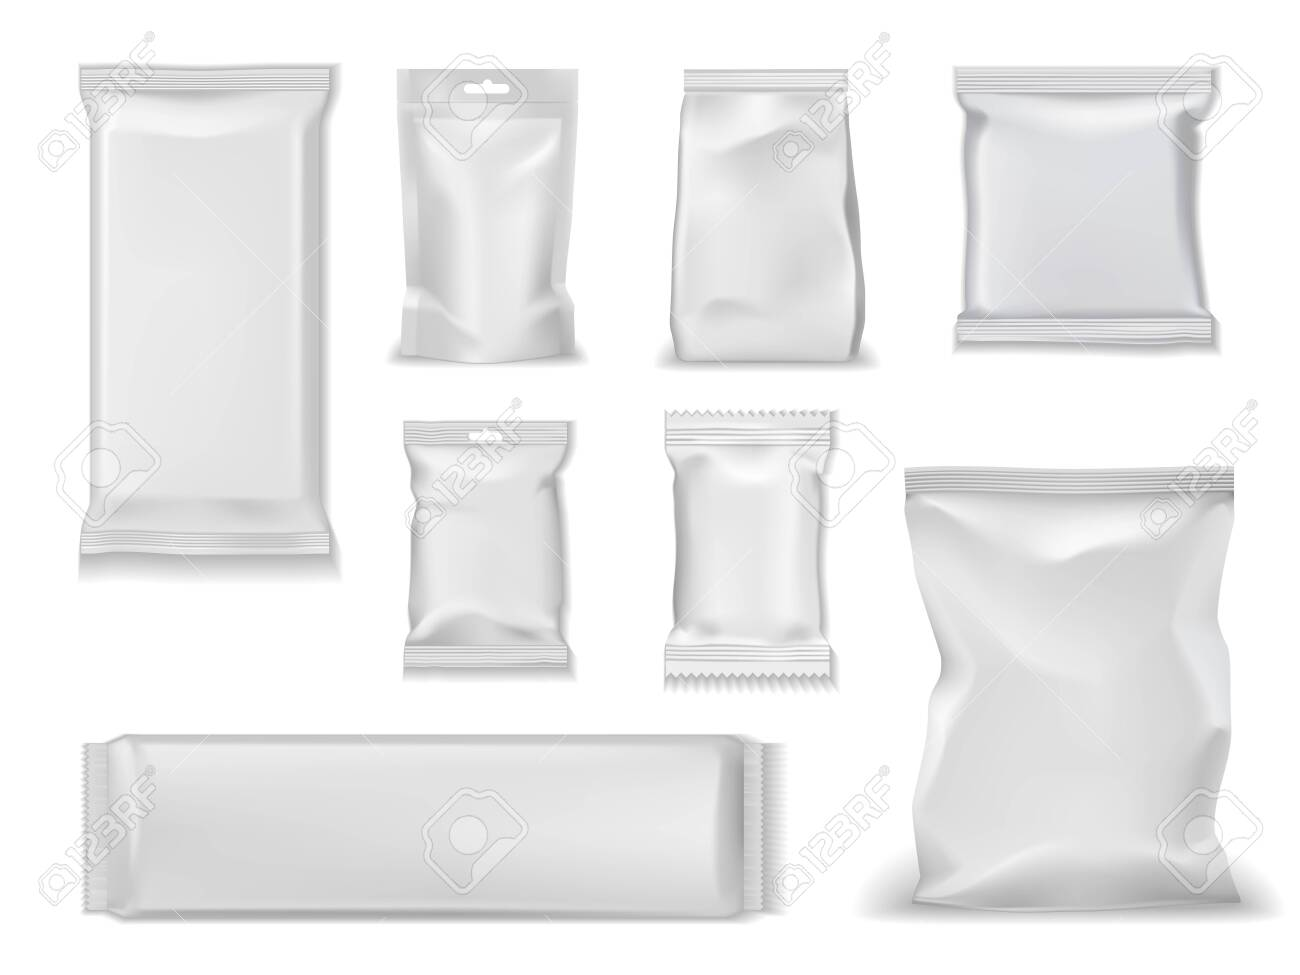 Download Bag Packs White Foil Doypack And Sachet Pouch Template Mockups Royalty Free Cliparts Vectors And Stock Illustration Image 128162209